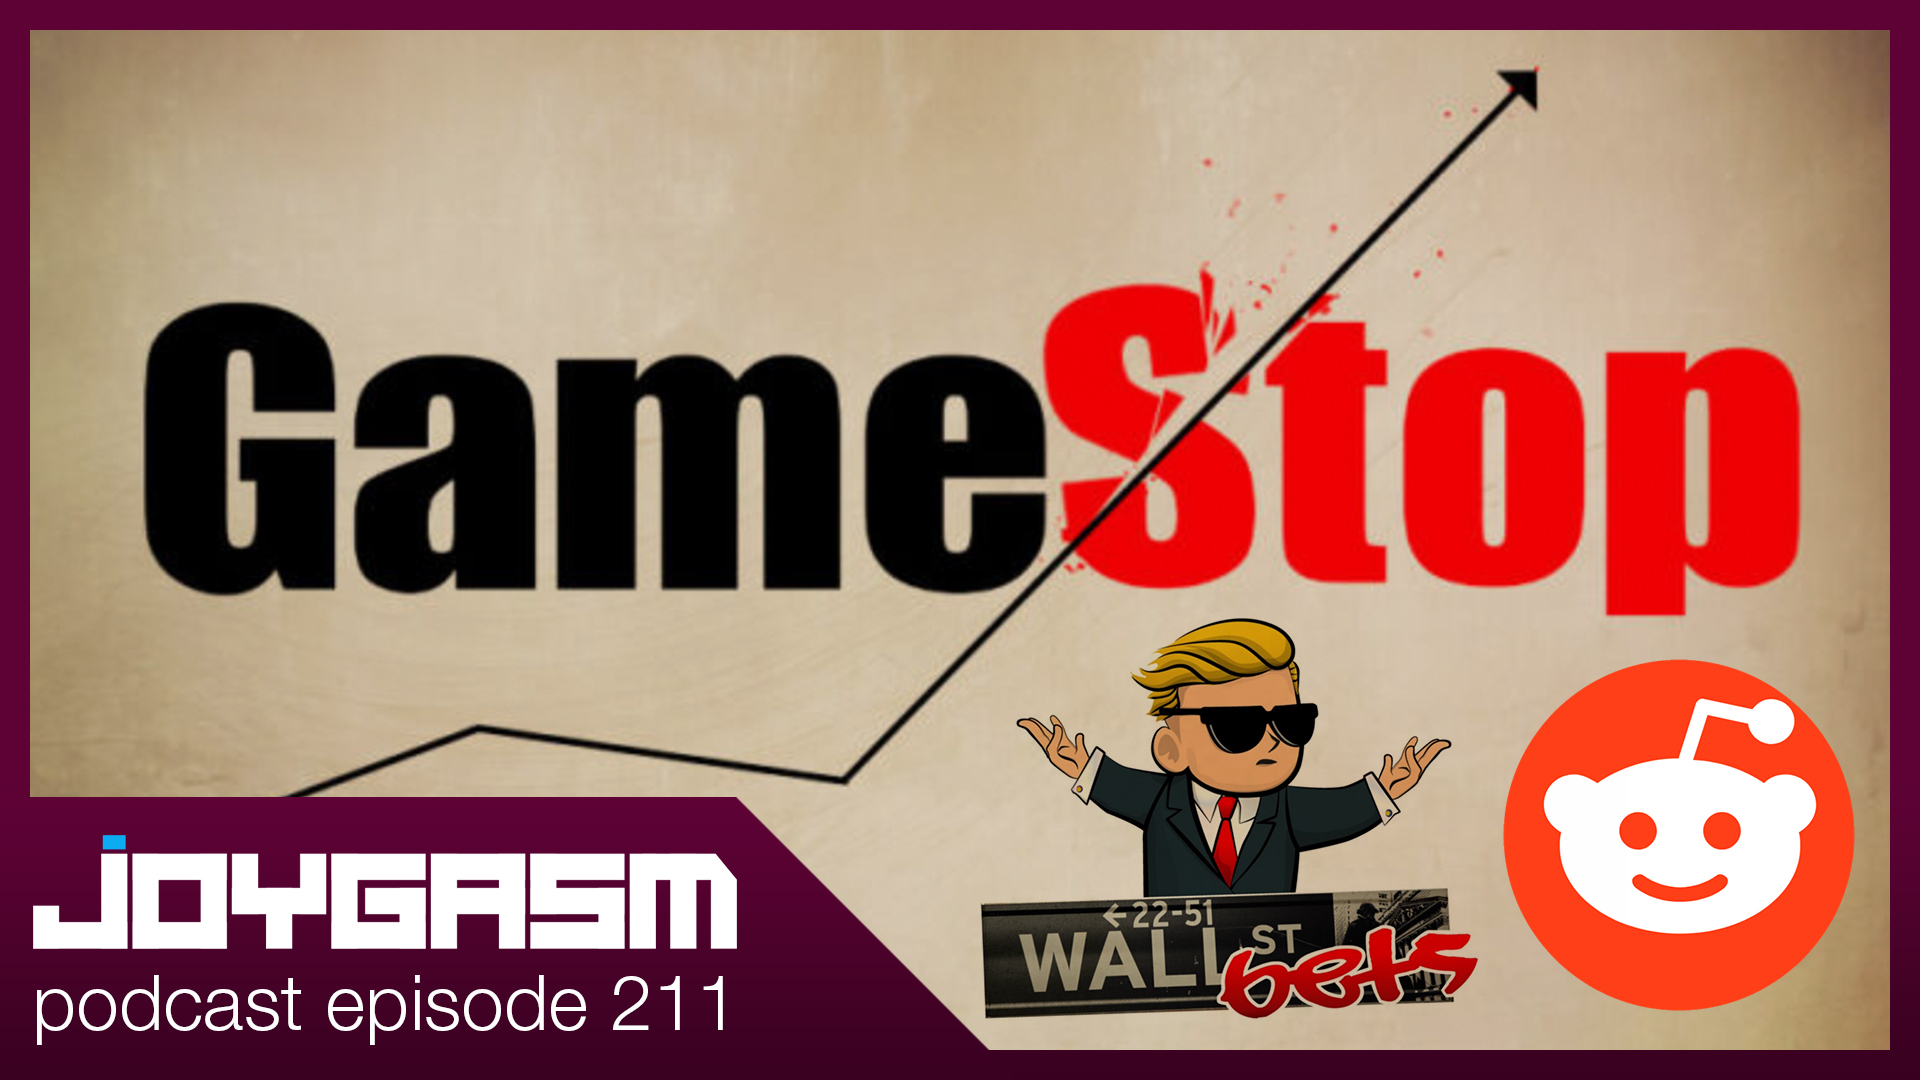 Ep. 211: The GameStop Stock Story